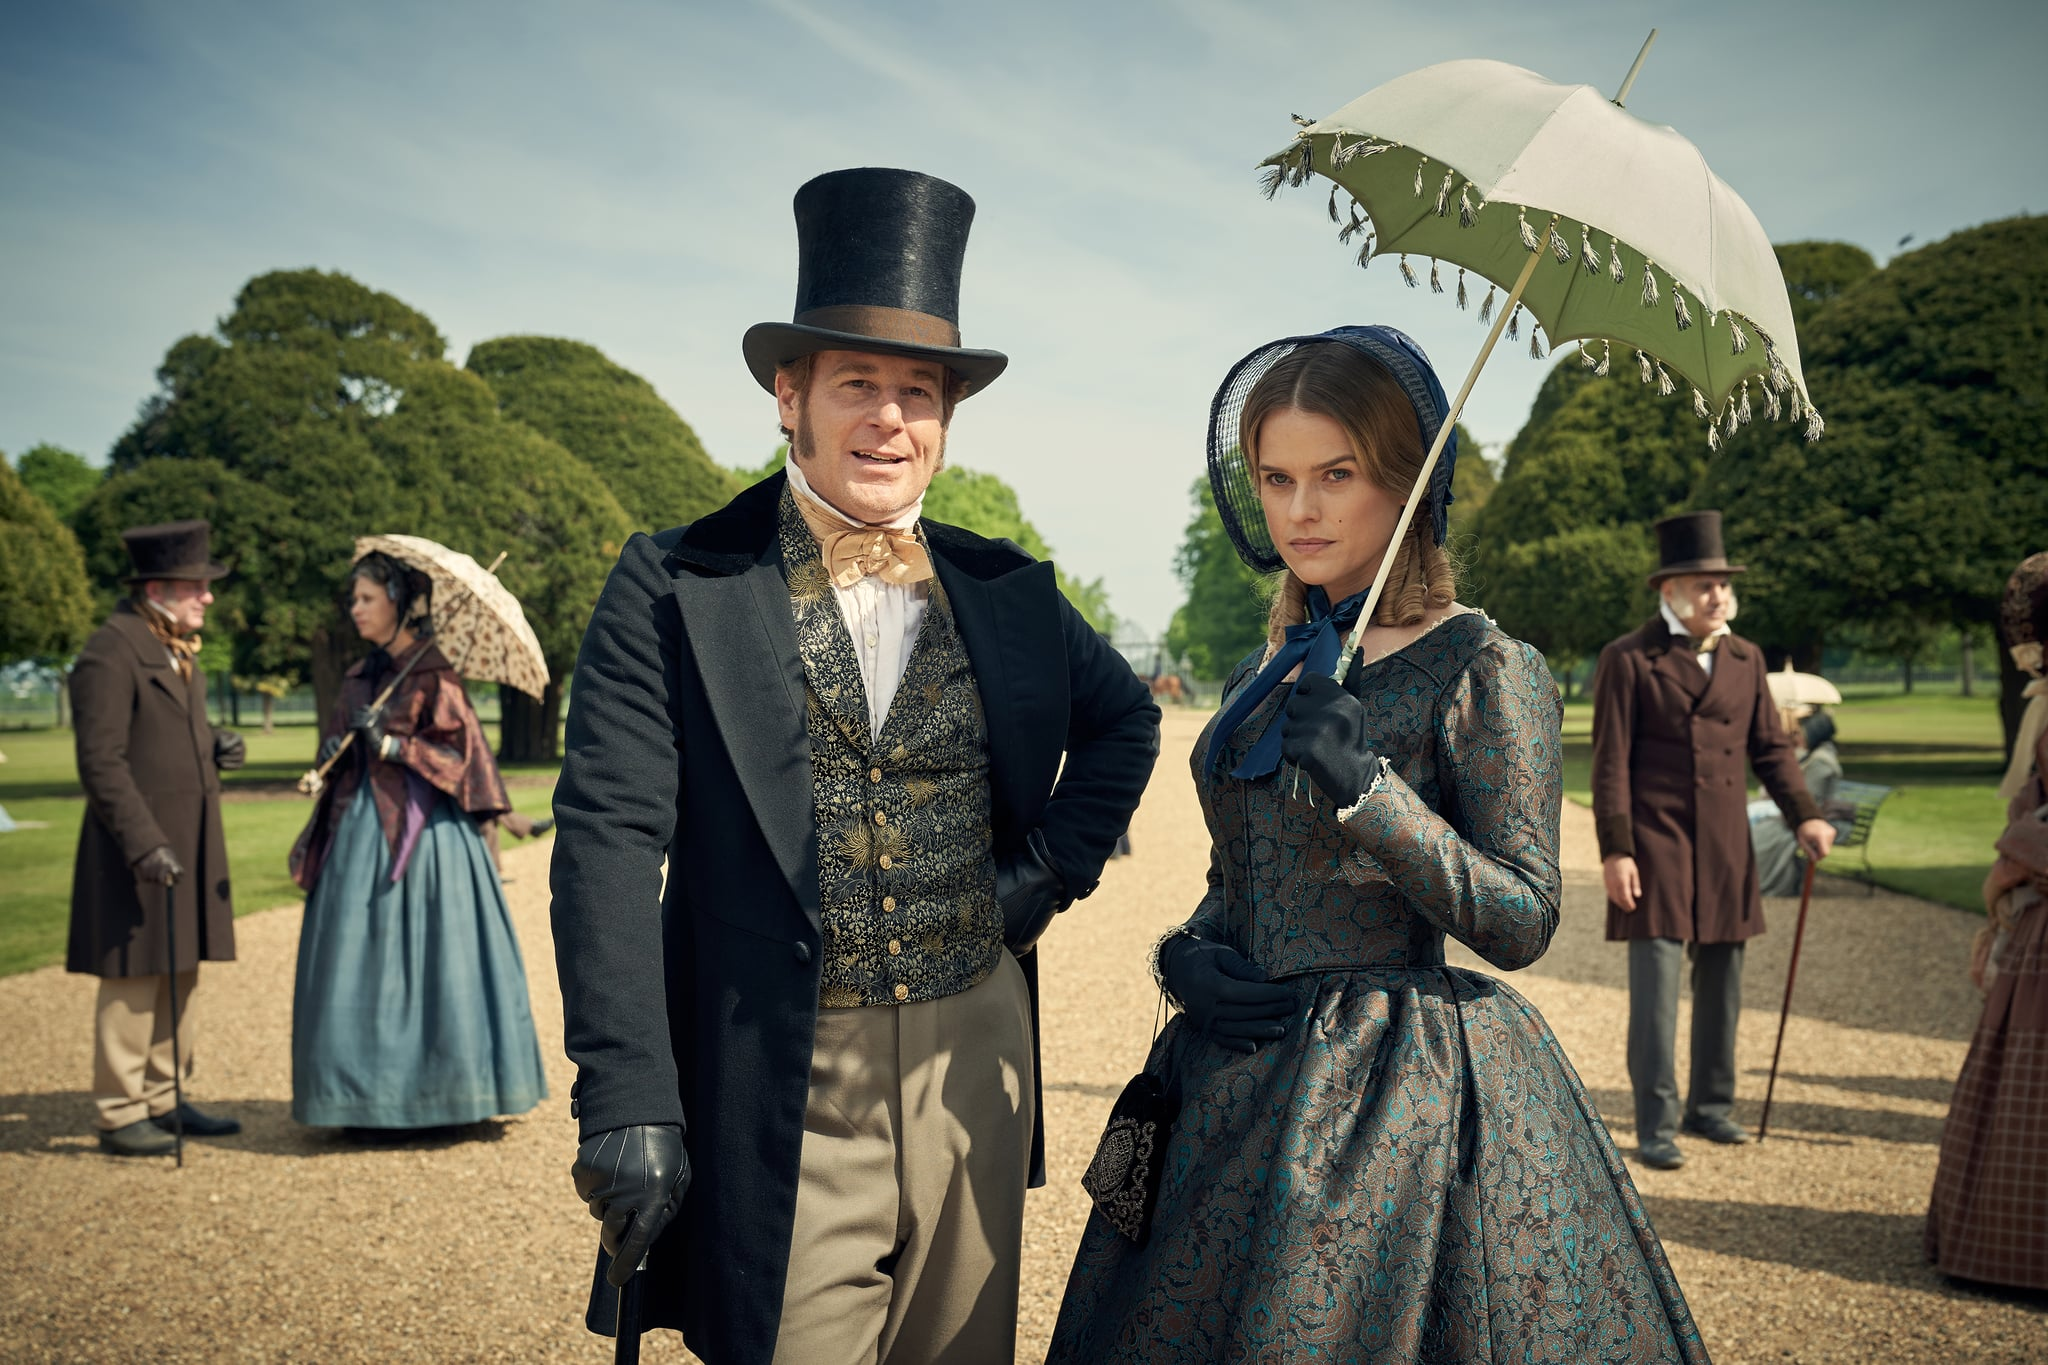 EMBARGIOED UNTIL 5.00PM ON 4TH jUNE 2019.CARNIVAL FILMS FOR ITVBELGRAVIAPictured:ADAM JAMES as John Bellasis and ALICE EVE as Susan Trenchard.This image is the copyright of Carnival Films.